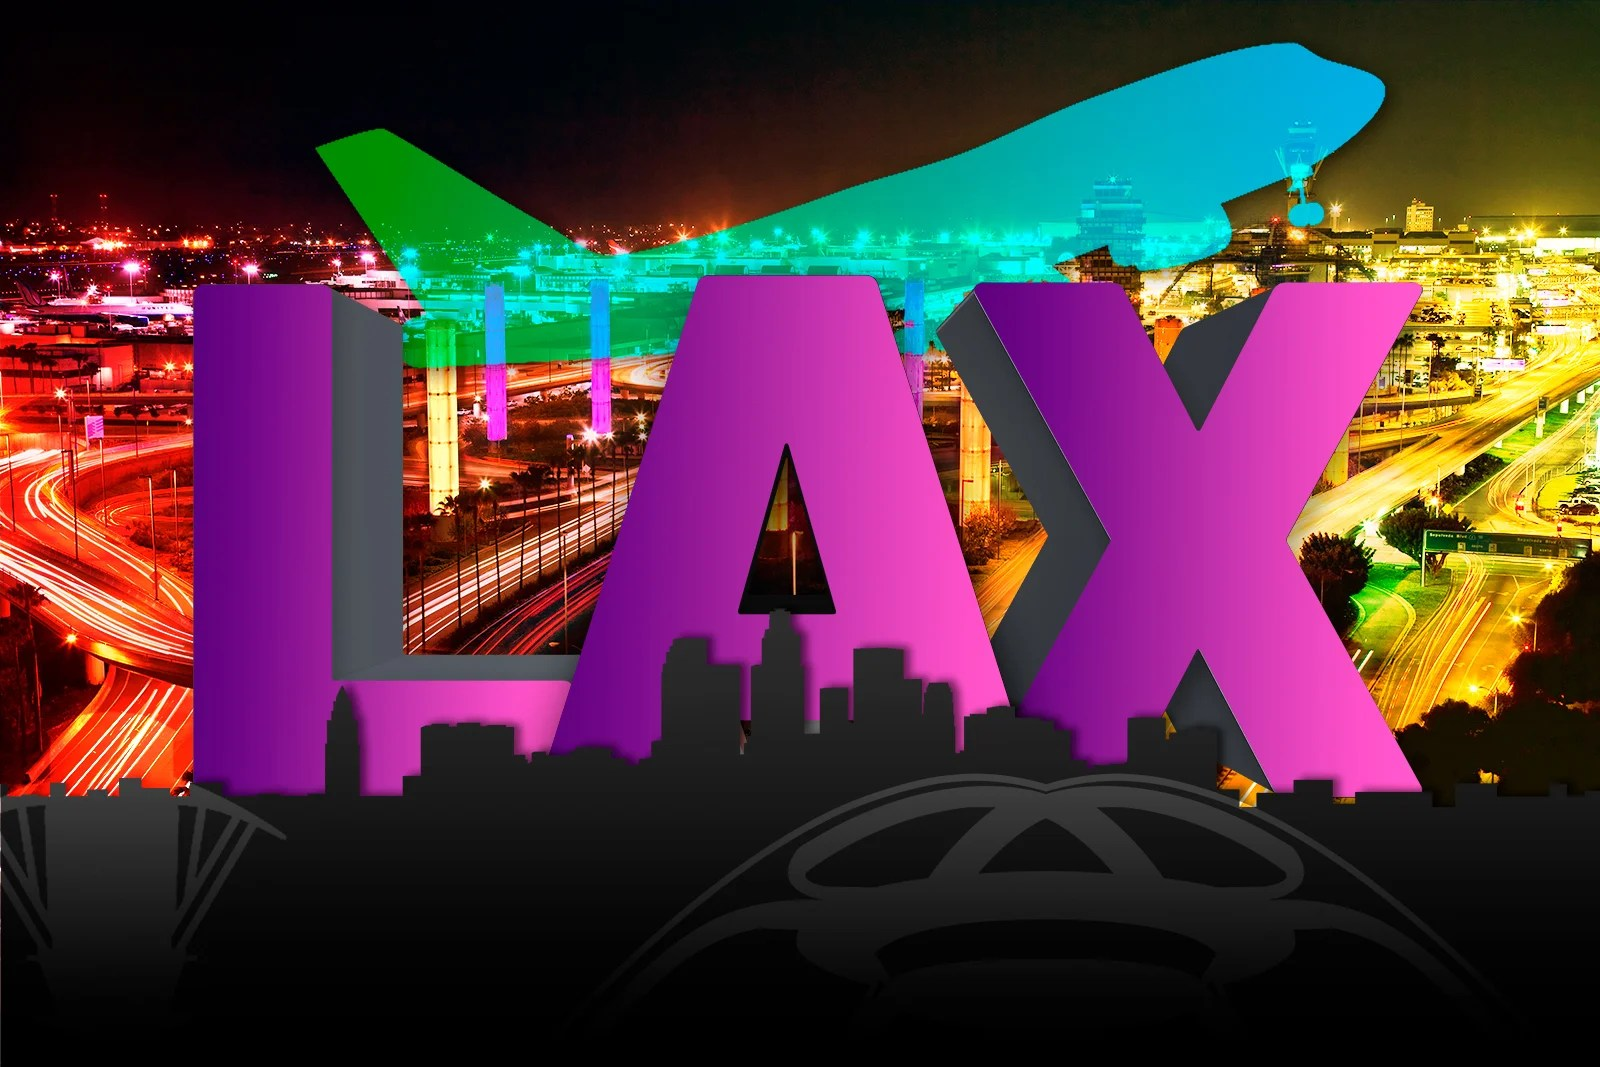 Los Angeles Airport 101: The ultimate guide to LAX